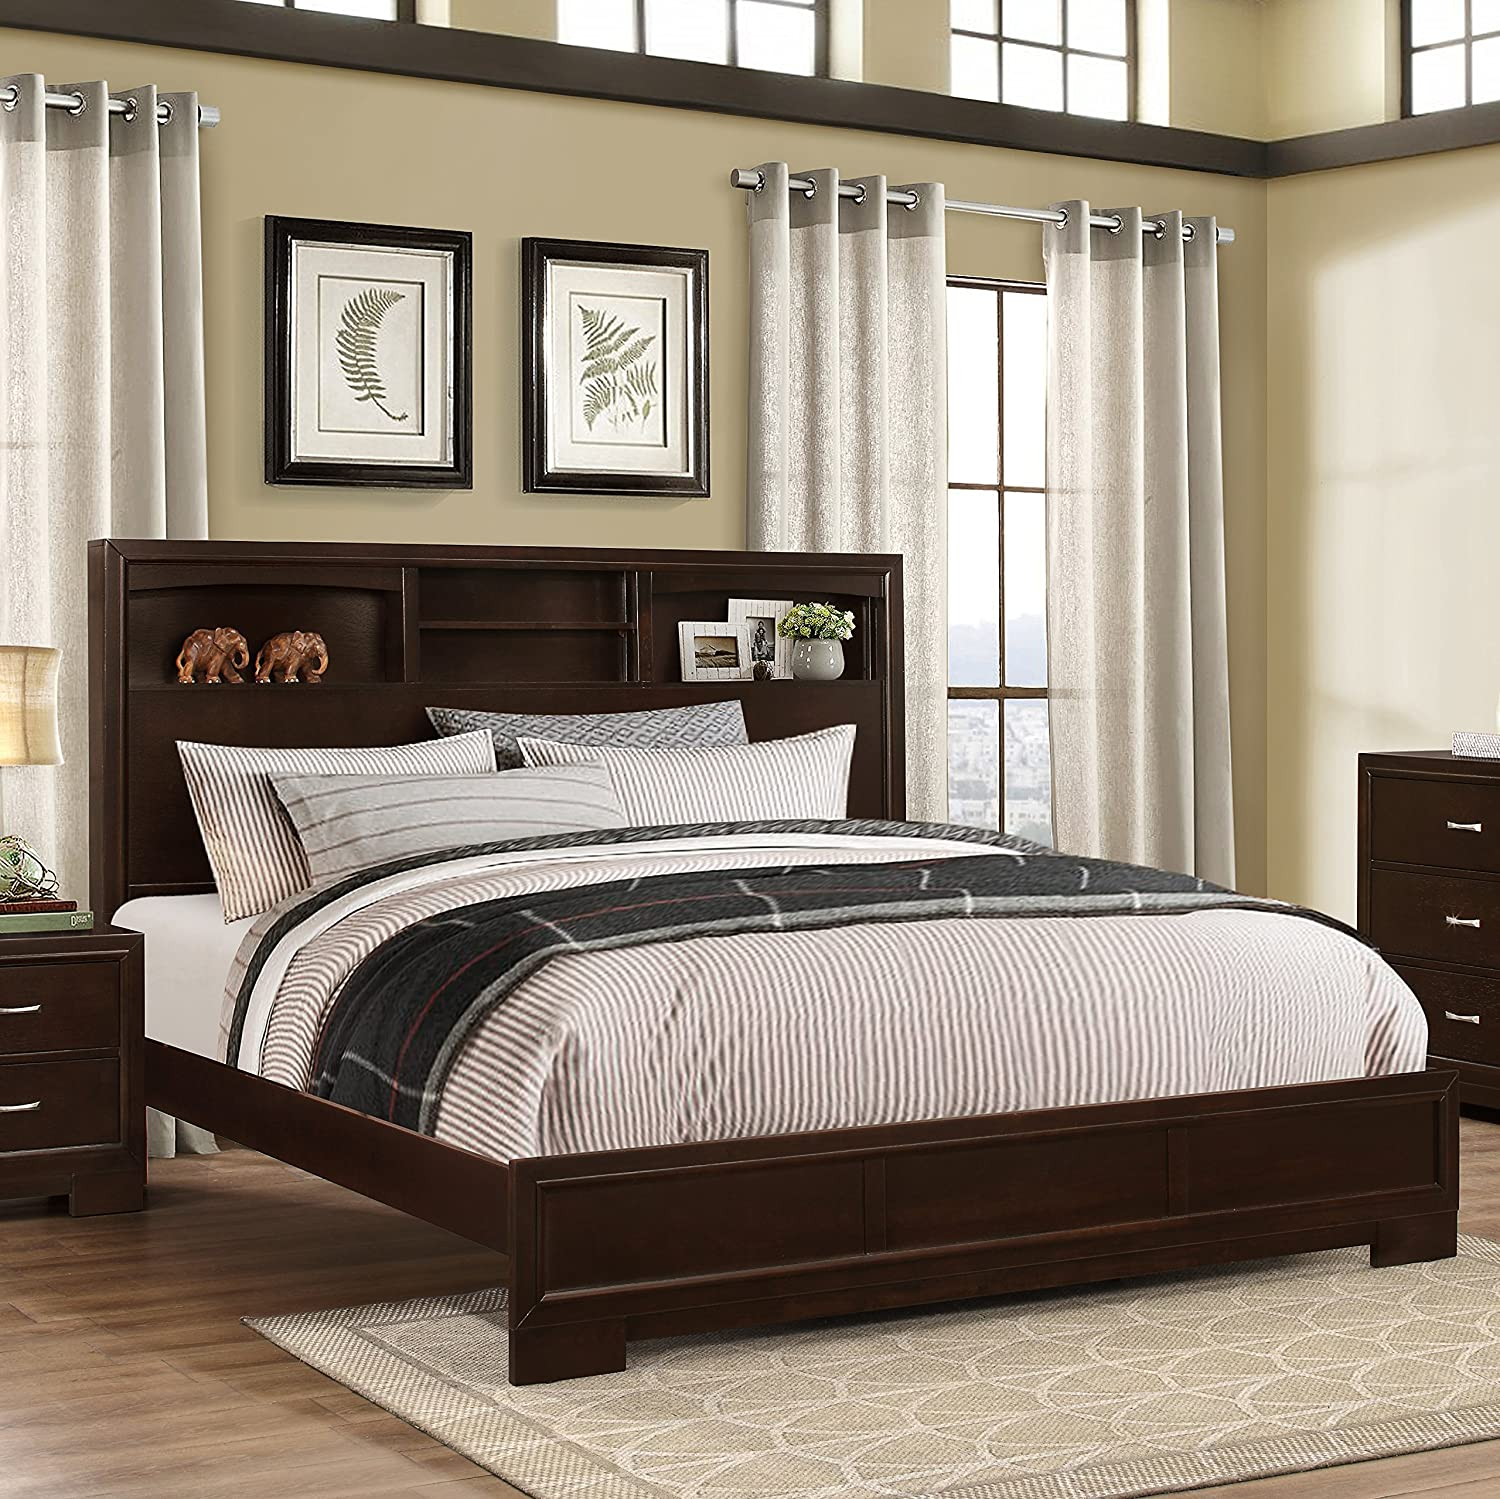 modern wood bedroom furniture. Amazon.com: Roundhill Furniture Montana Modern 5-Piece Wood Bedroom Set With Bed, Dresser, Mirror, Nightstand, Chest, King, Walnut: Kitchen \u0026 Dining